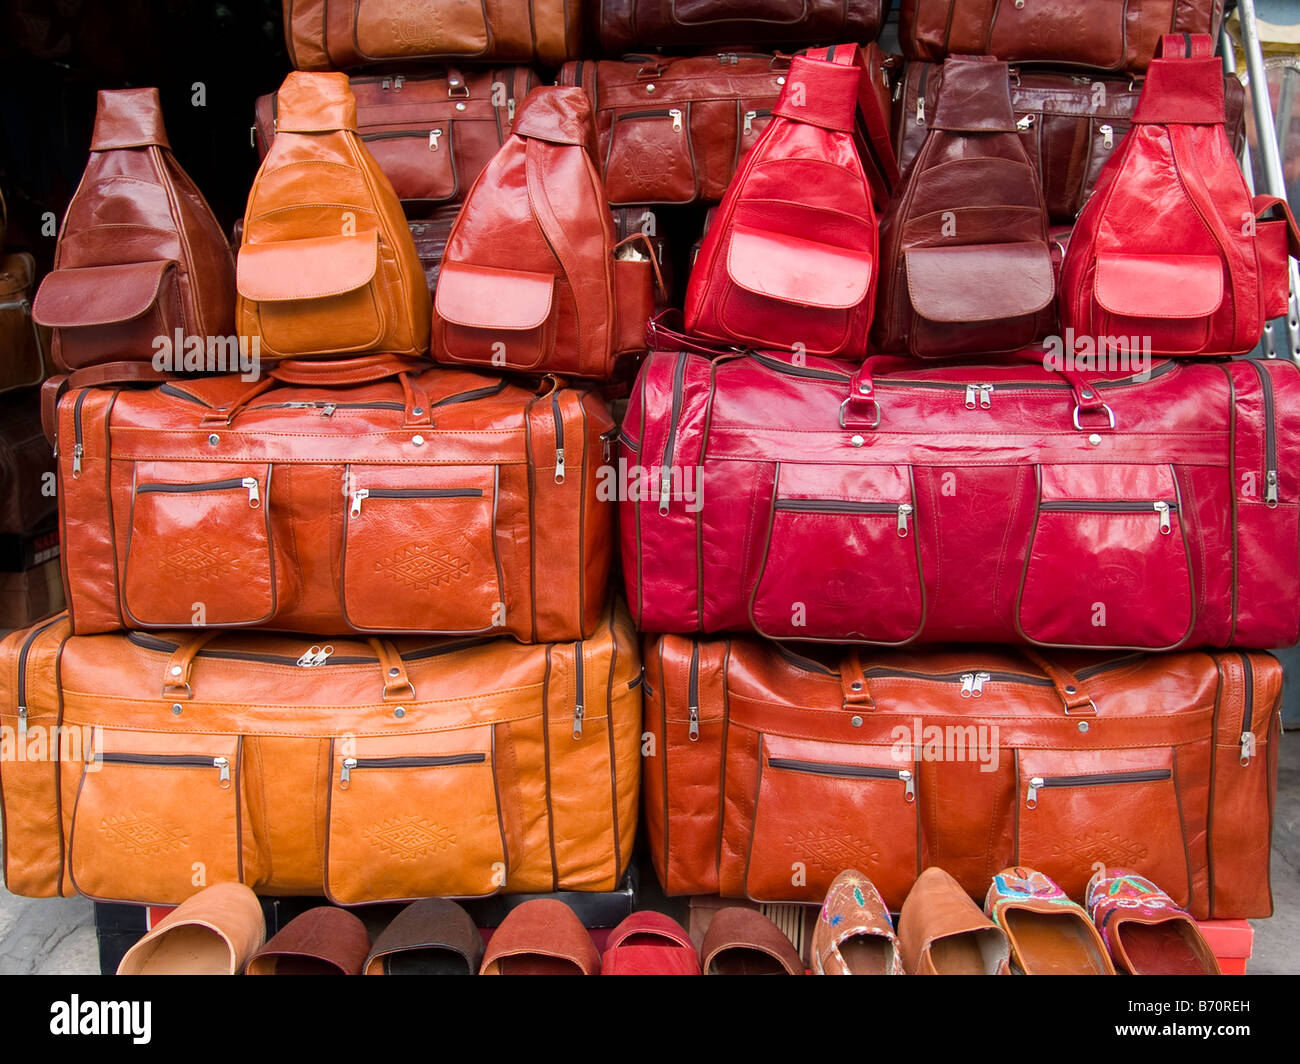 leather goods for sale in a Tunisian souk - Stock Image